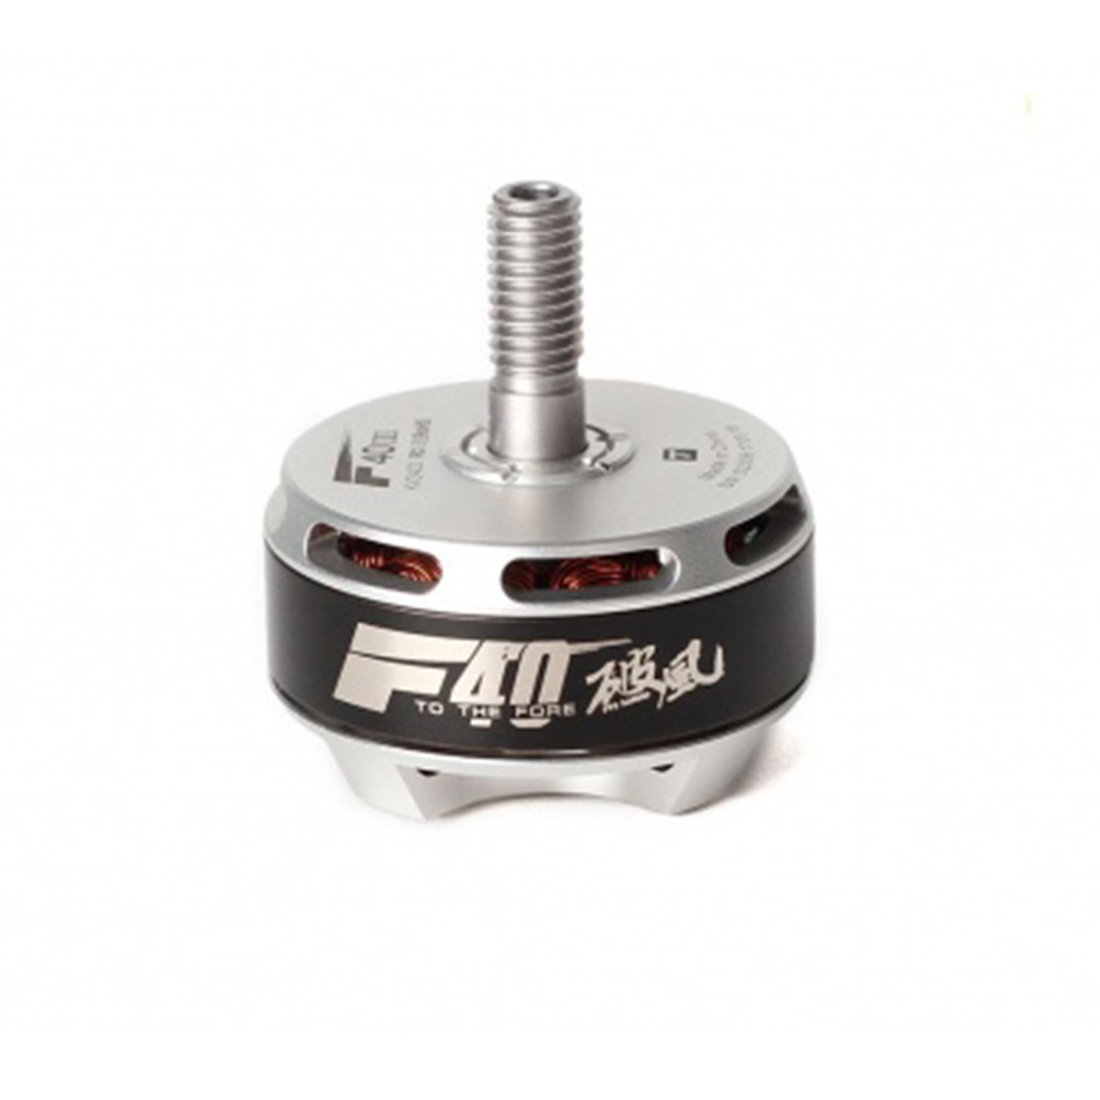 T-Motor F40 III 2306 2400KV 2600KV 2750KV Brushless Motor for 210 220 250 260 RC Models Multicopter Quadcopter FPV Drones t motor mn1804 2400kv brushless motor for rc quadcopter multirotor